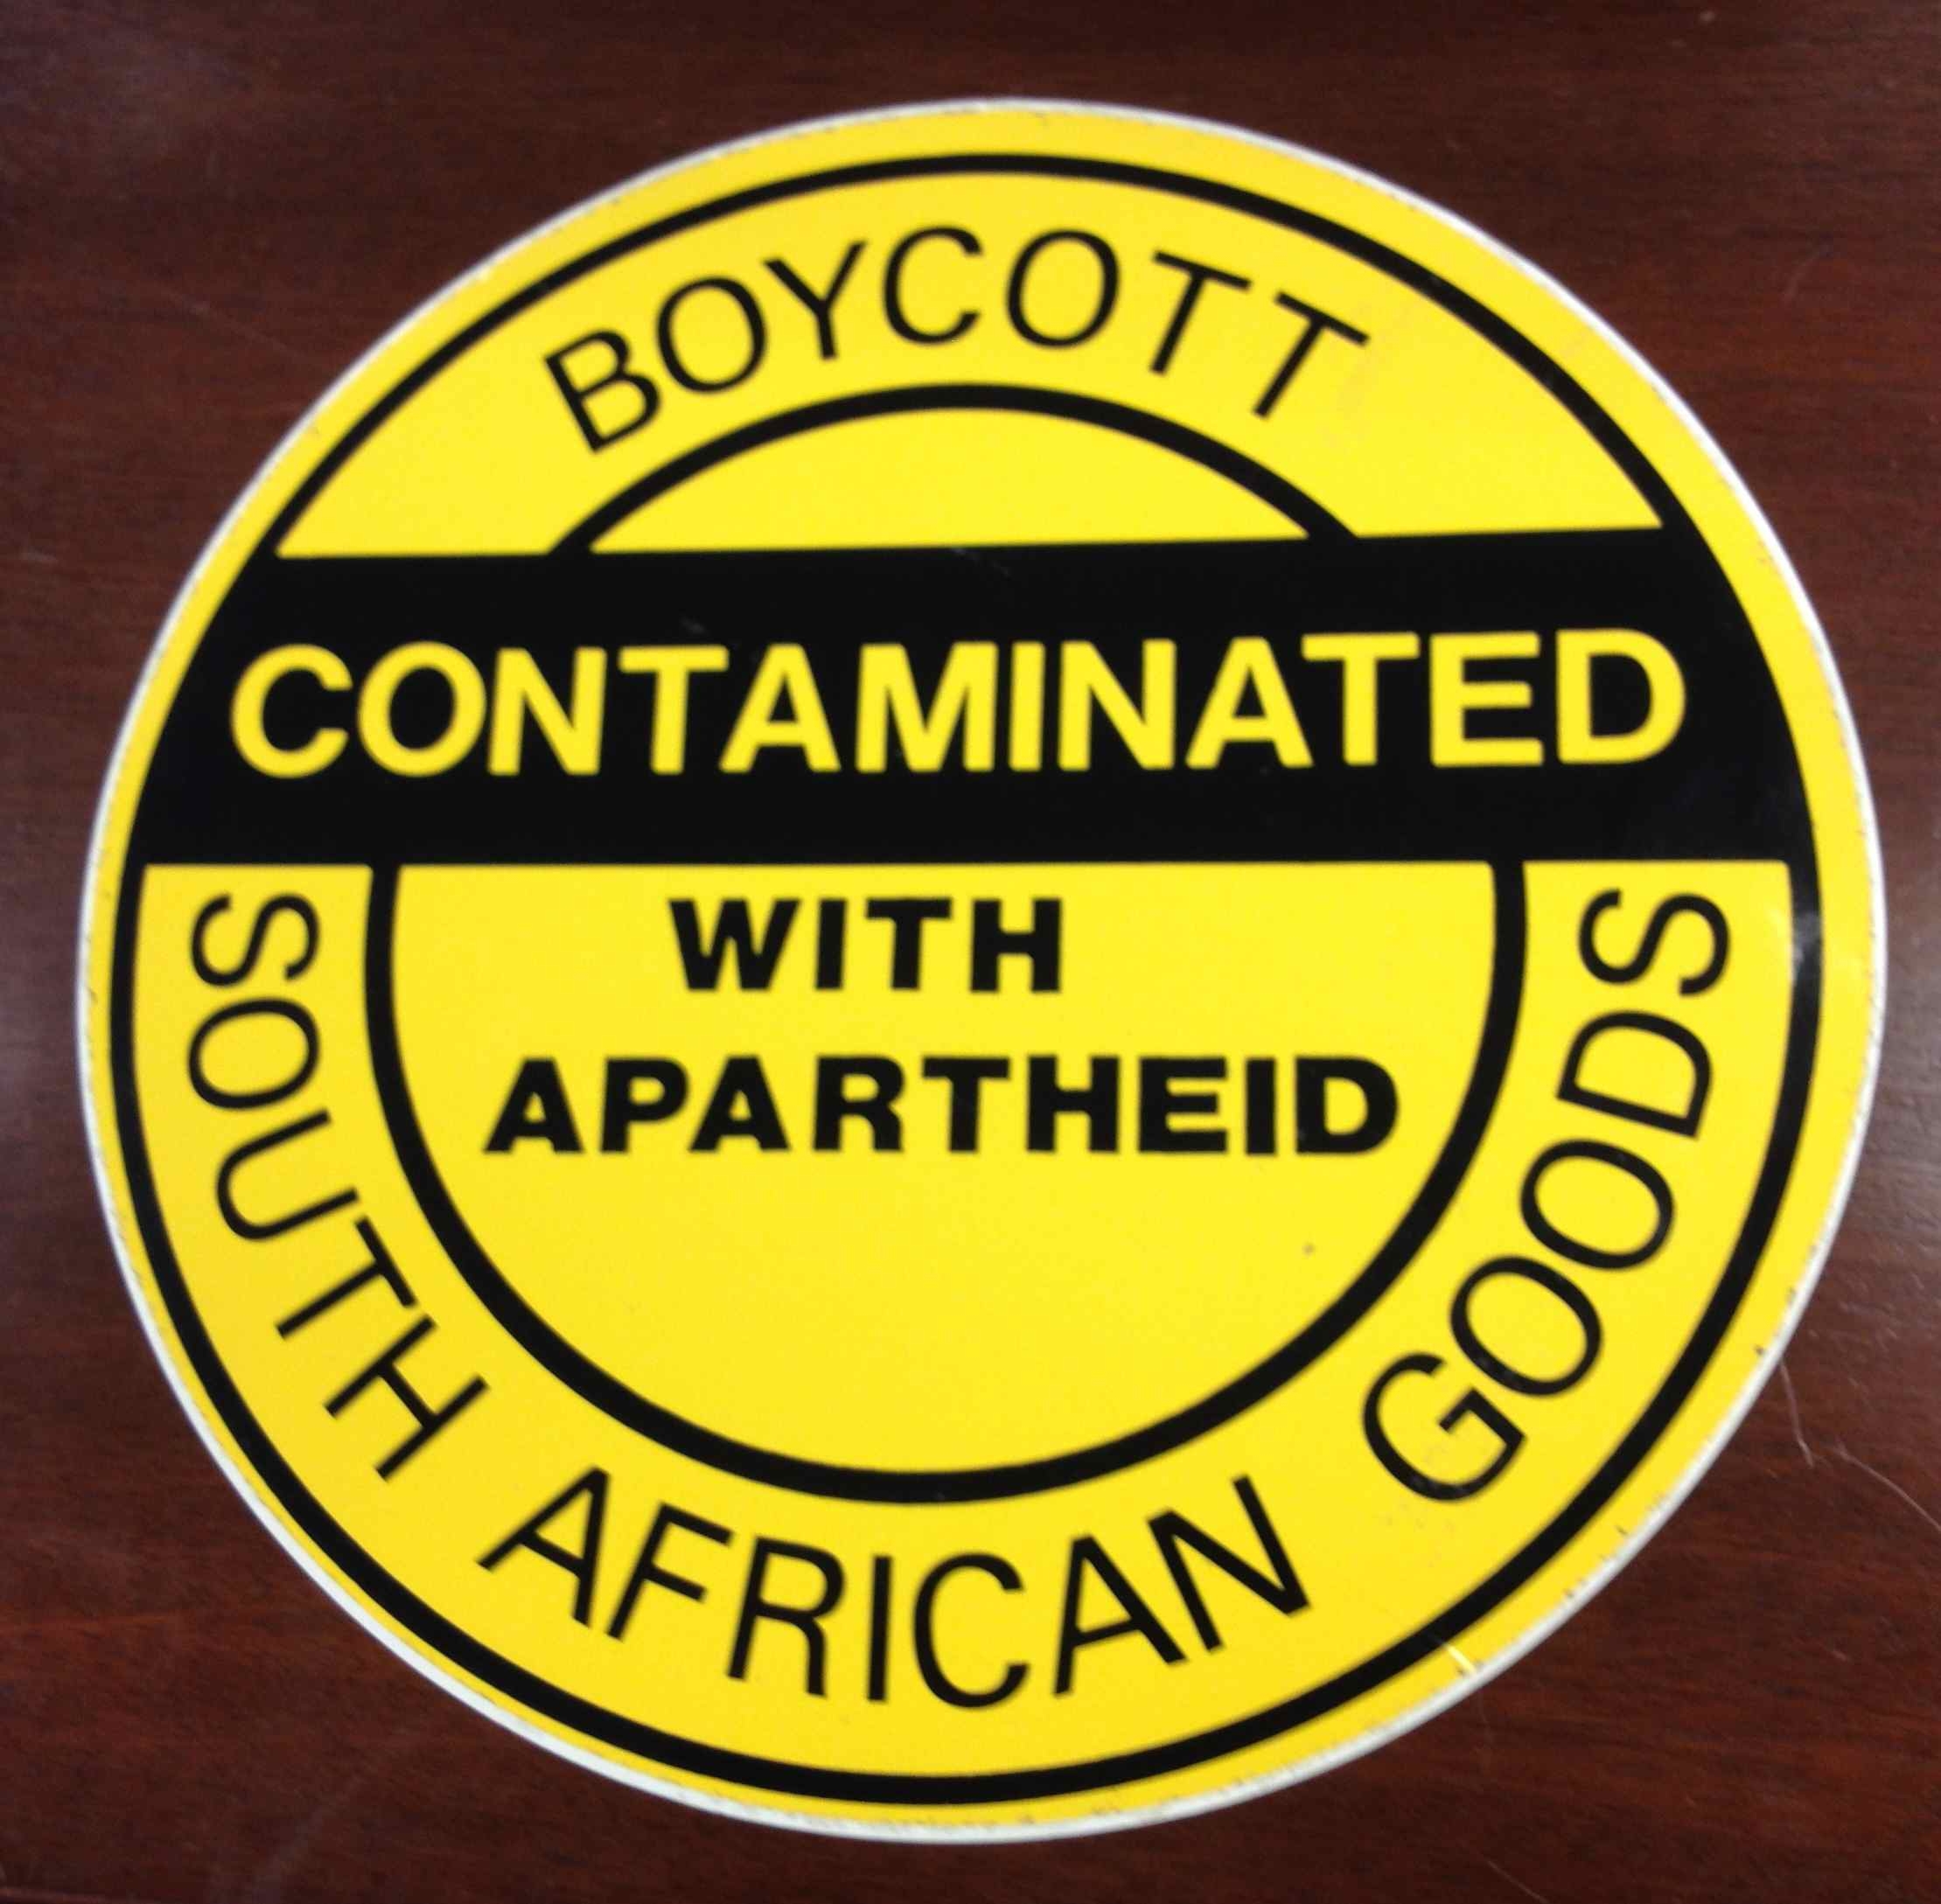 Boycott_-_Contaminated_with_apartheid_-_South_African_goods